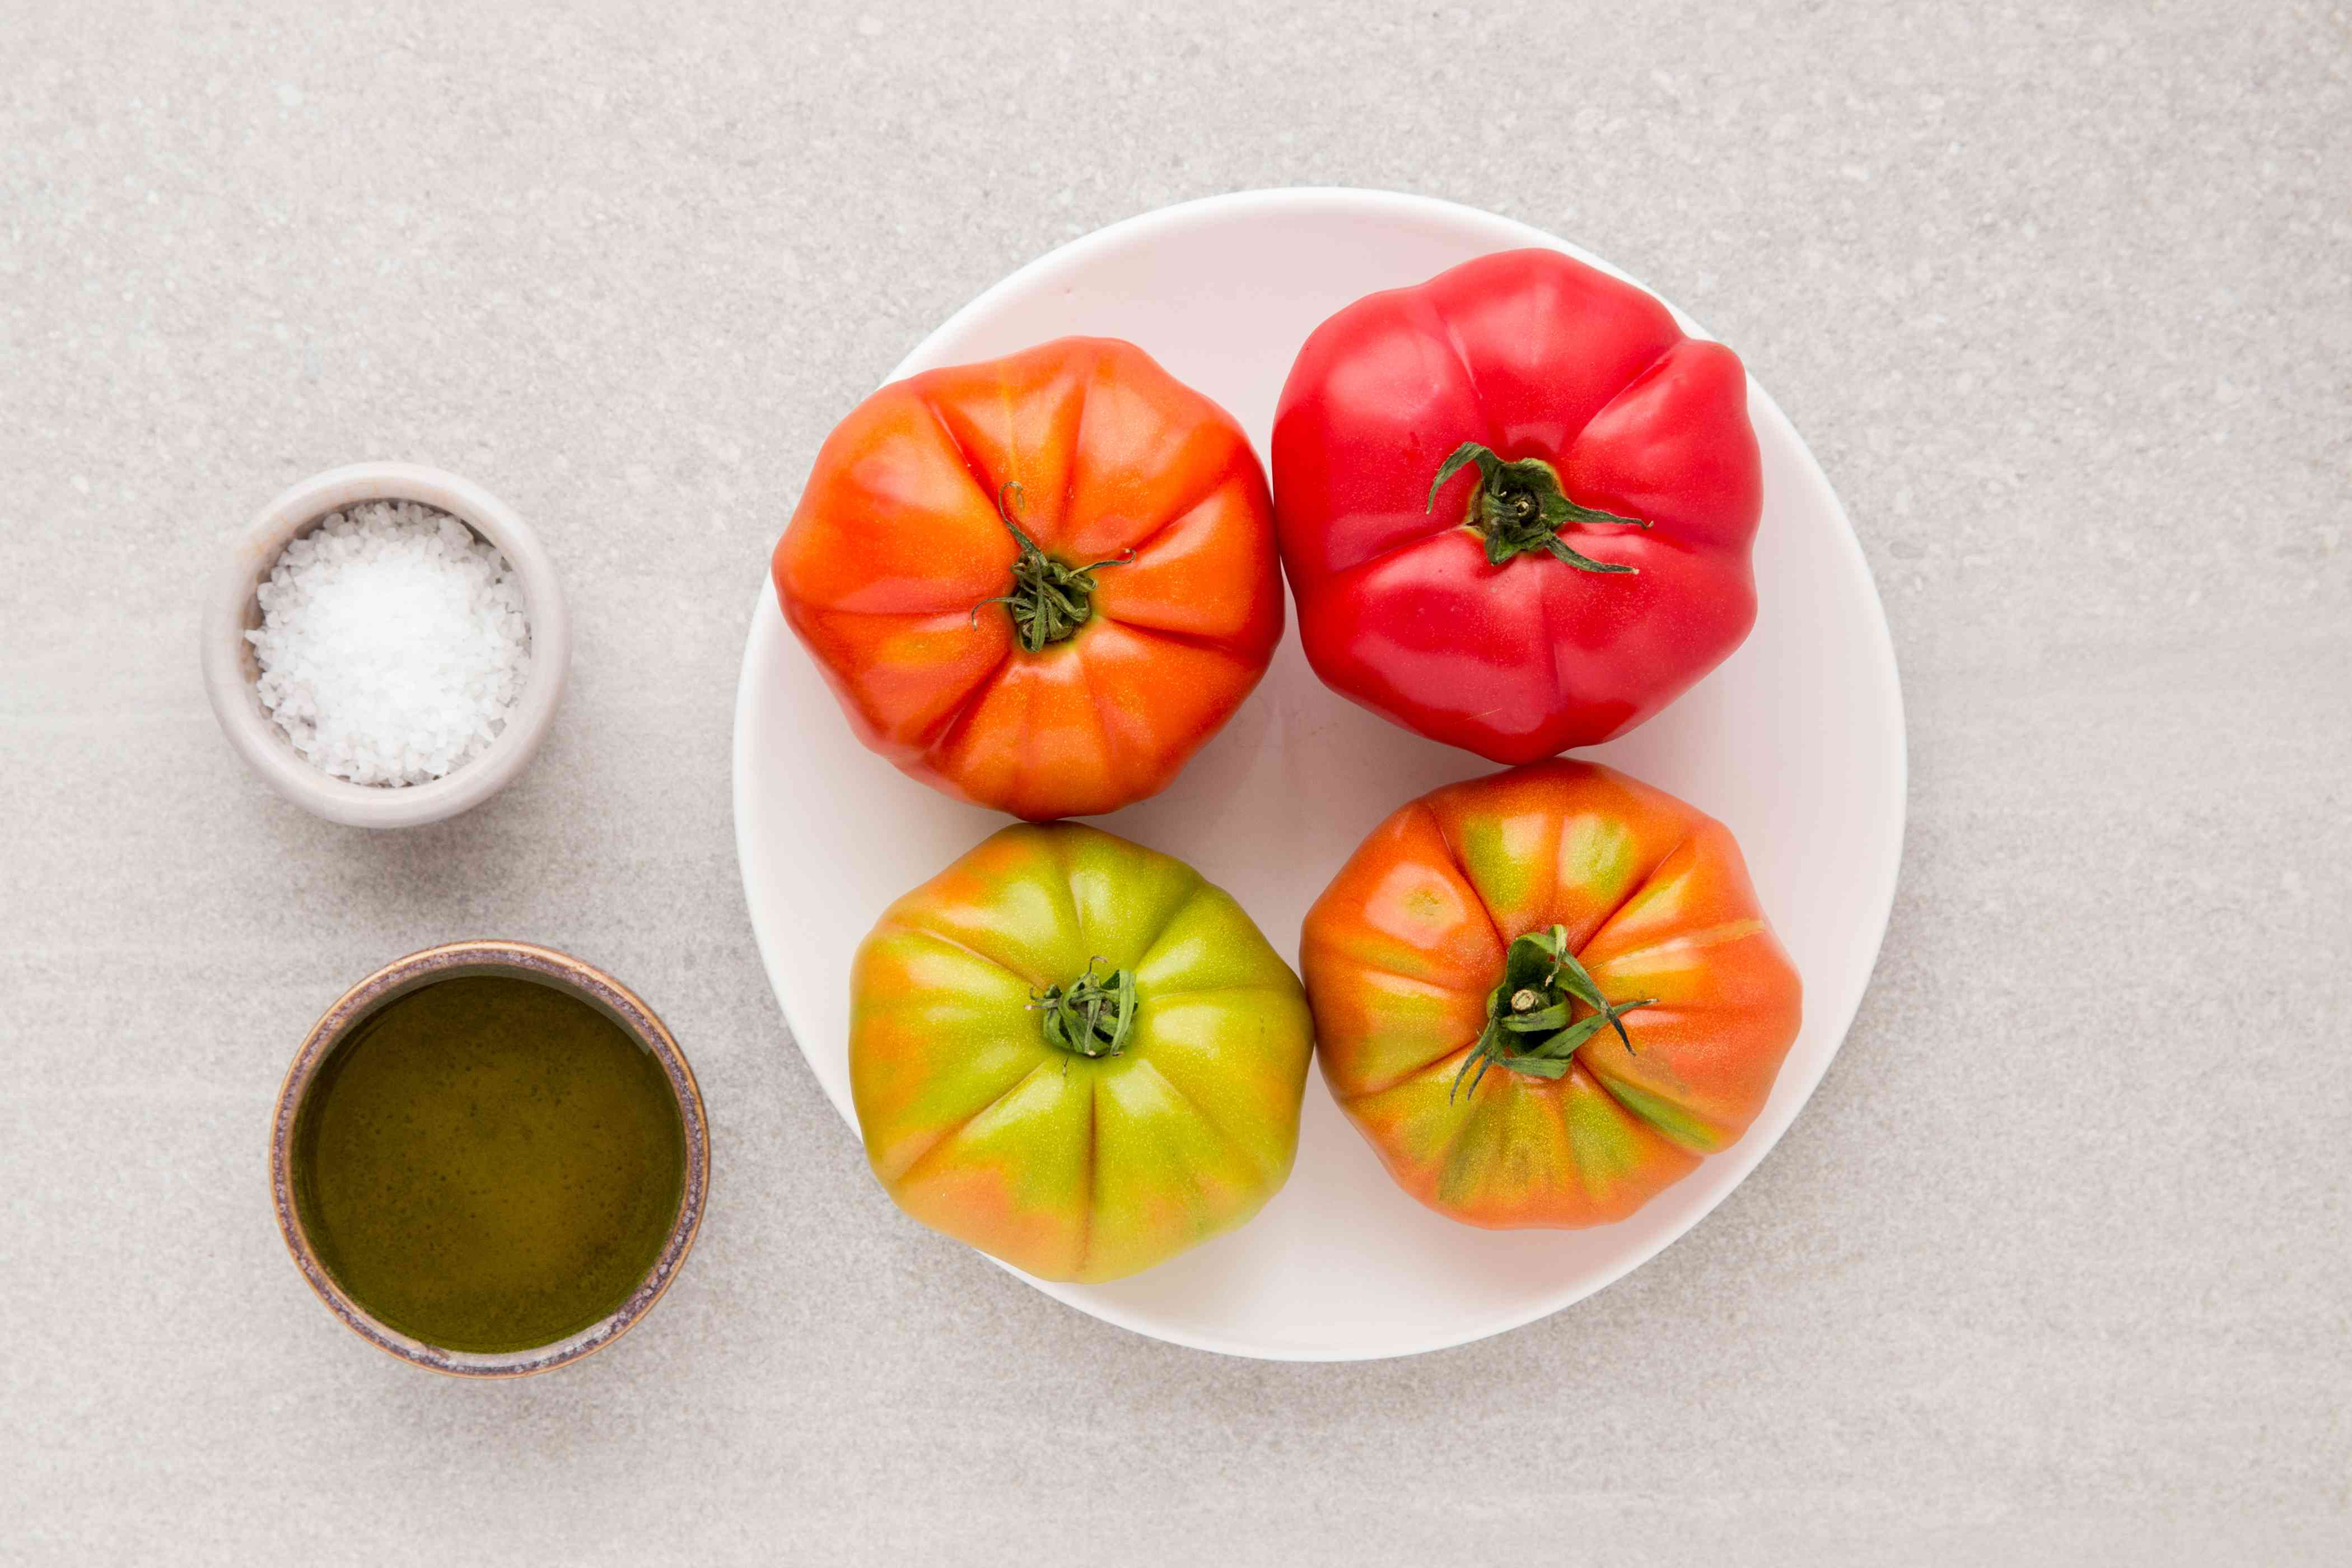 Ingredients for making grilled tomatoes